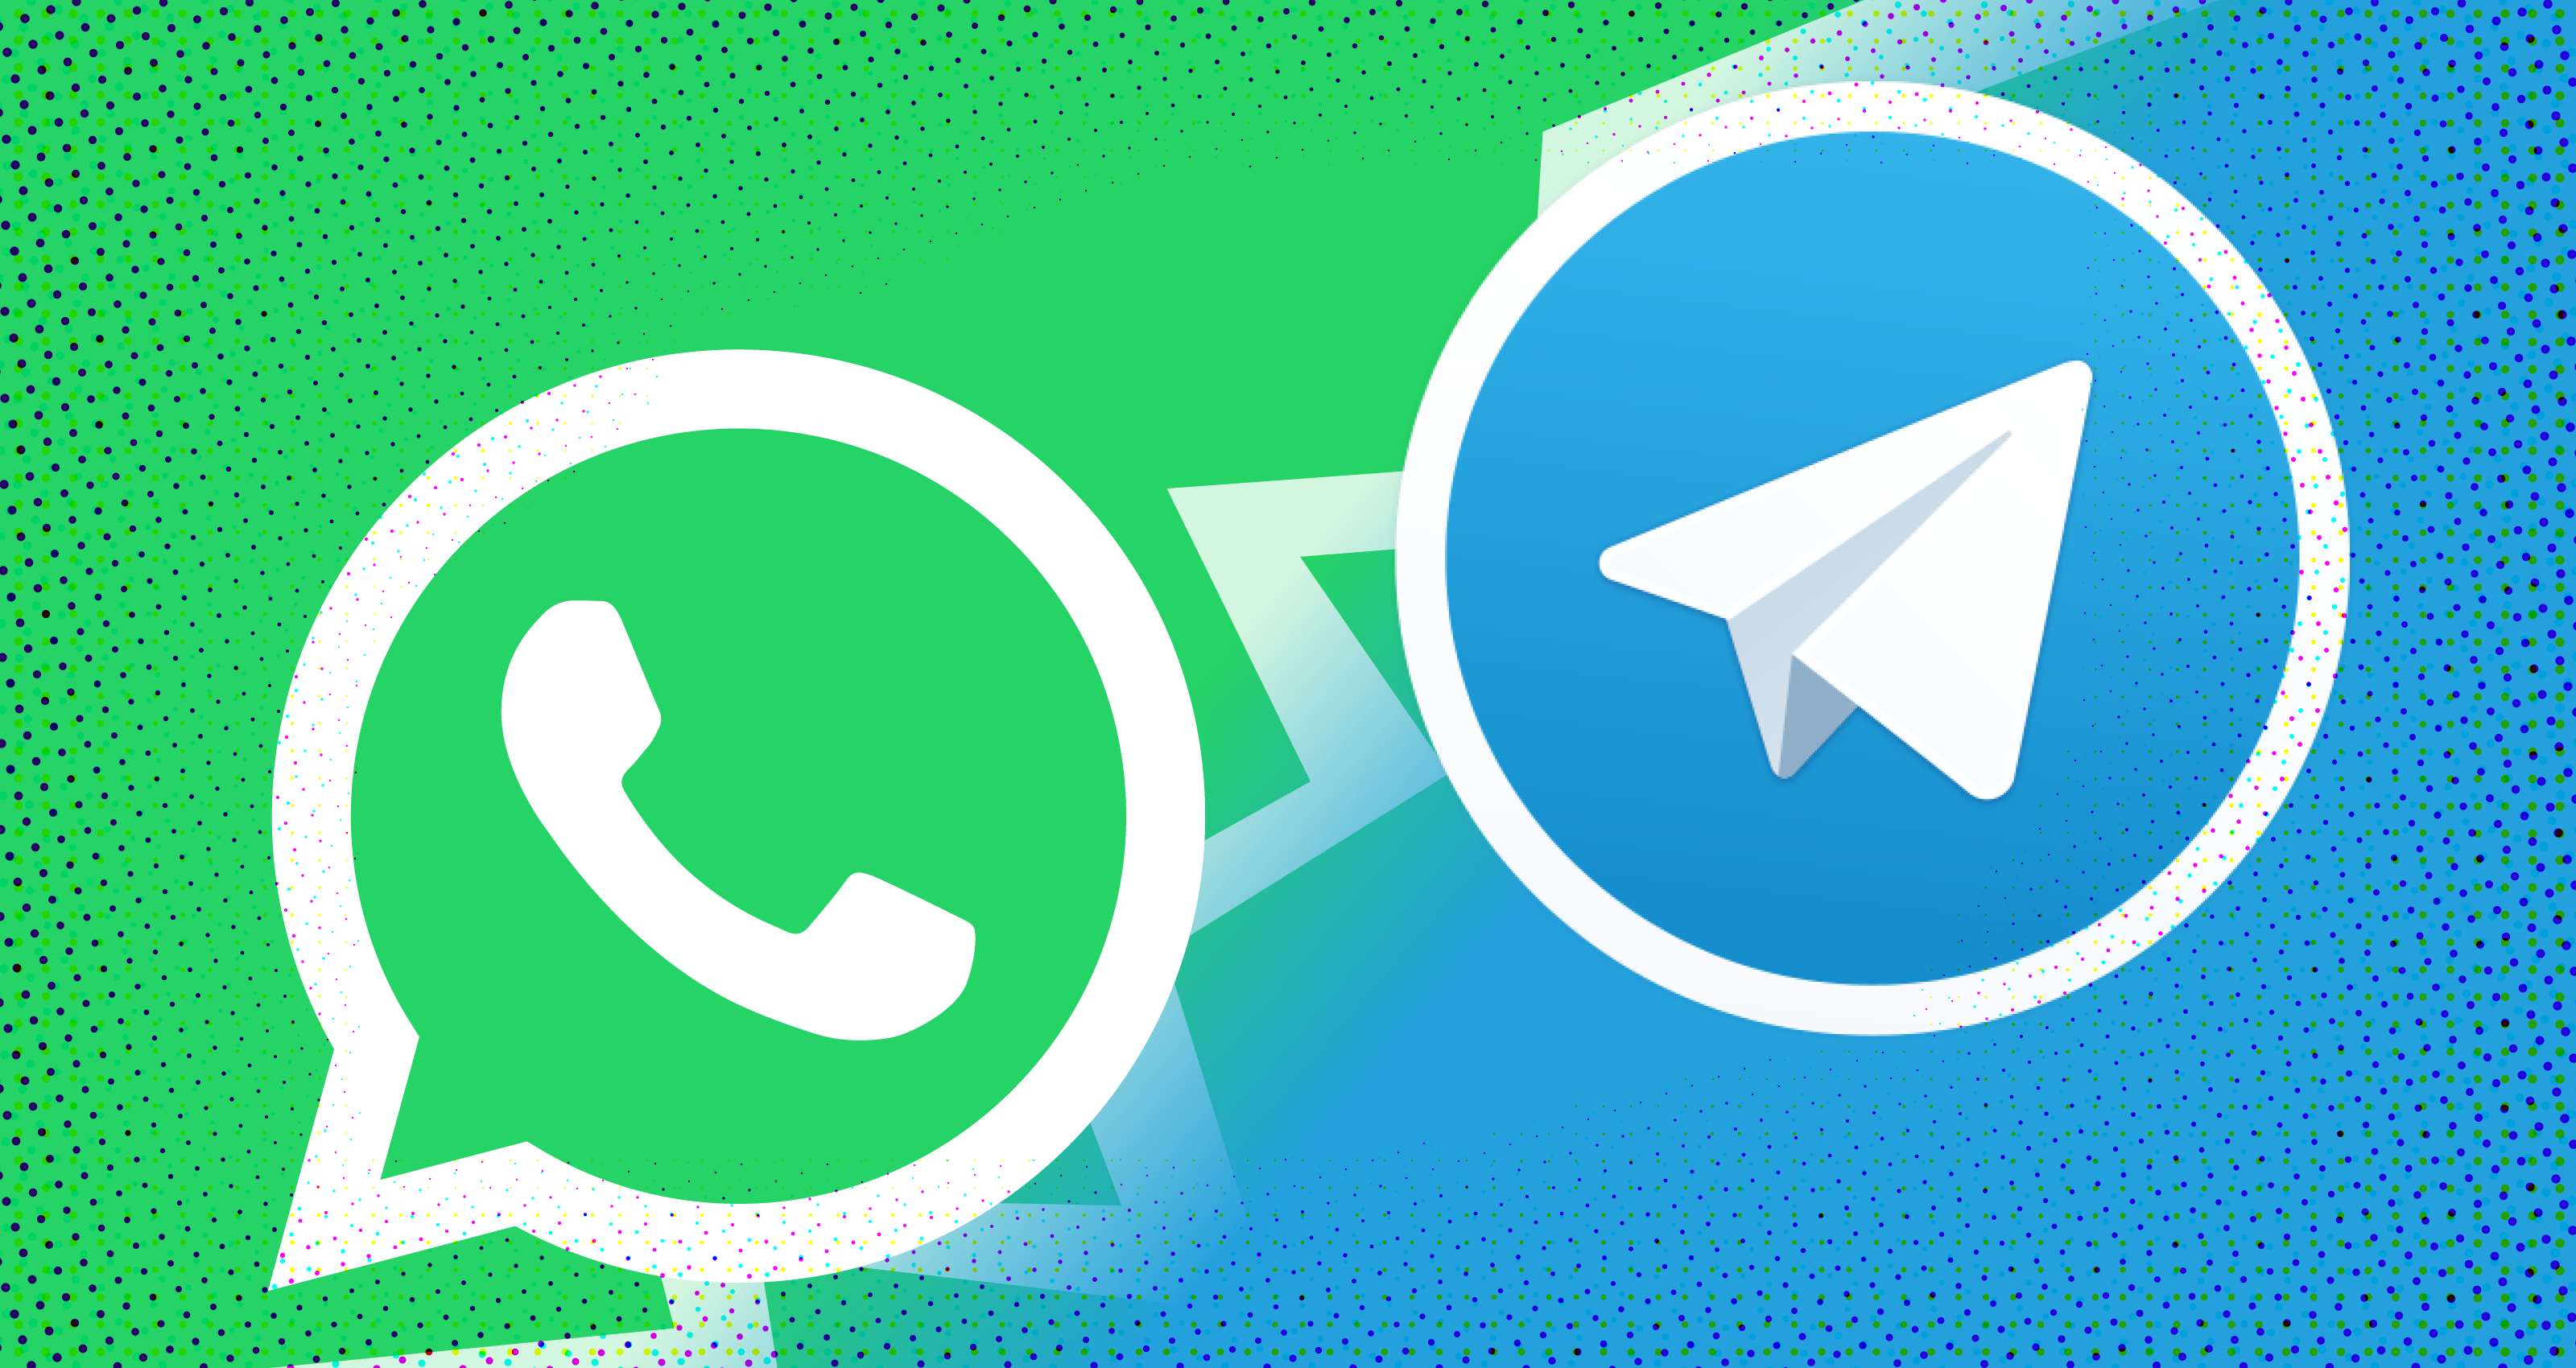 WhatsApp Gets New Group Features, Including Descriptions, Mentions, and Admin Controls